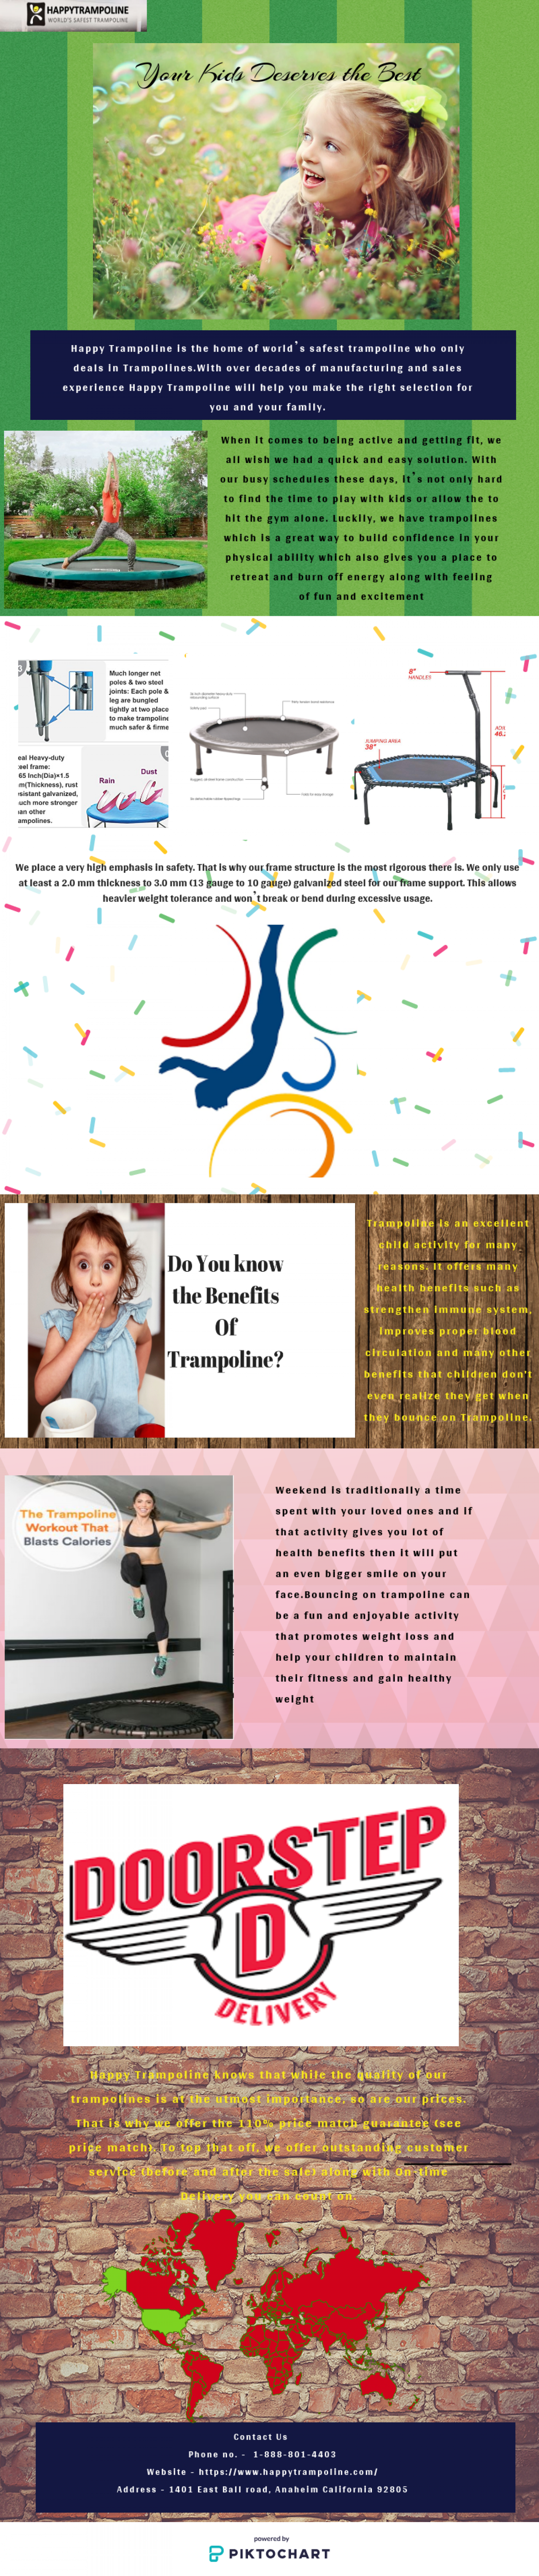 Top Quality Trampoline Manufacturer | Happy Trampoline Infographic